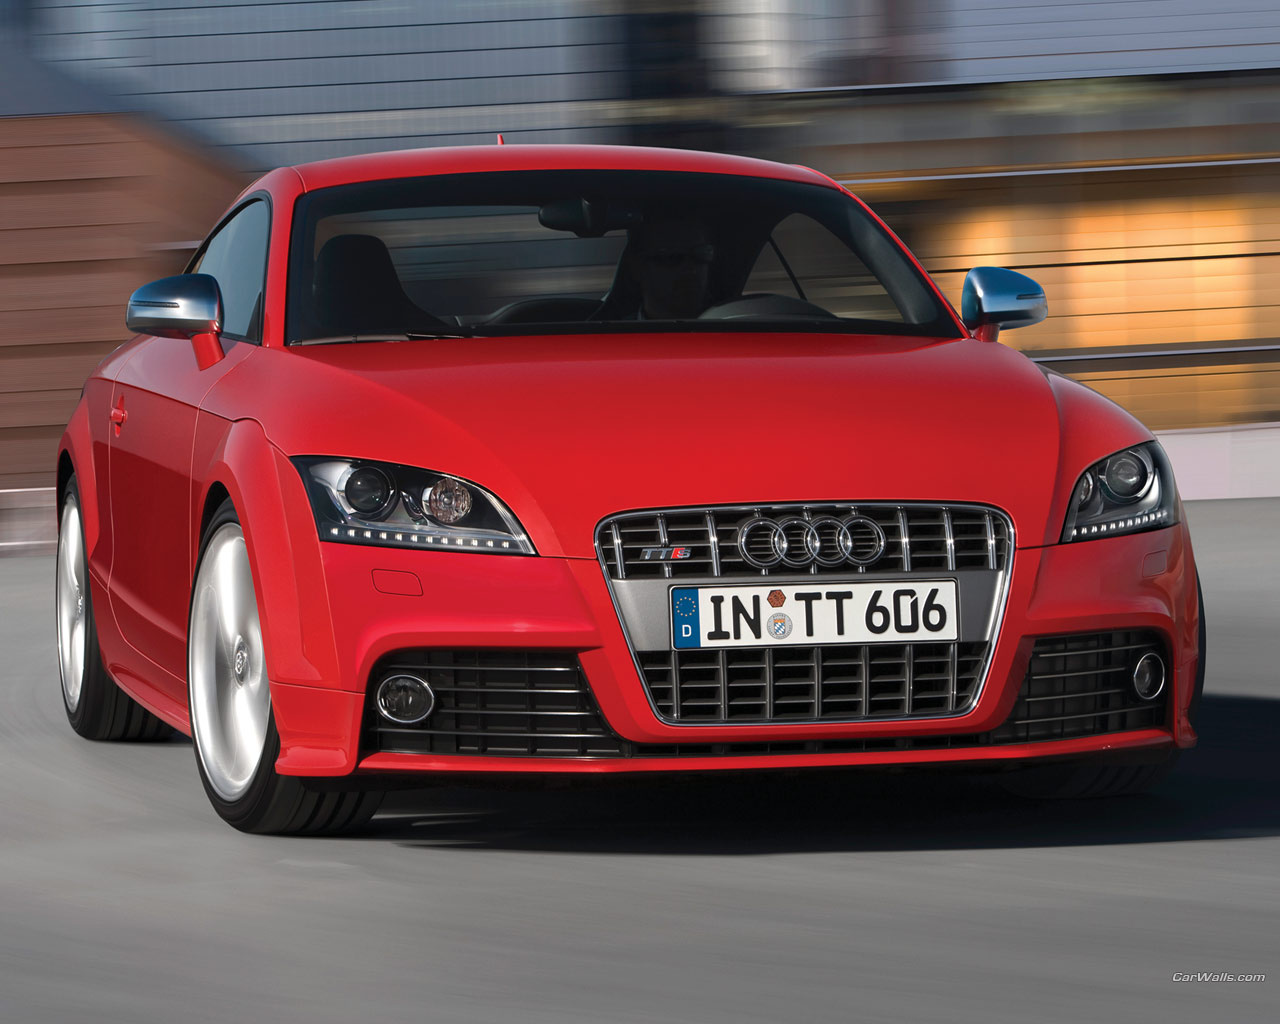 Audi Tt Questions Which Is The Name Of The Most Famous Audi Sport